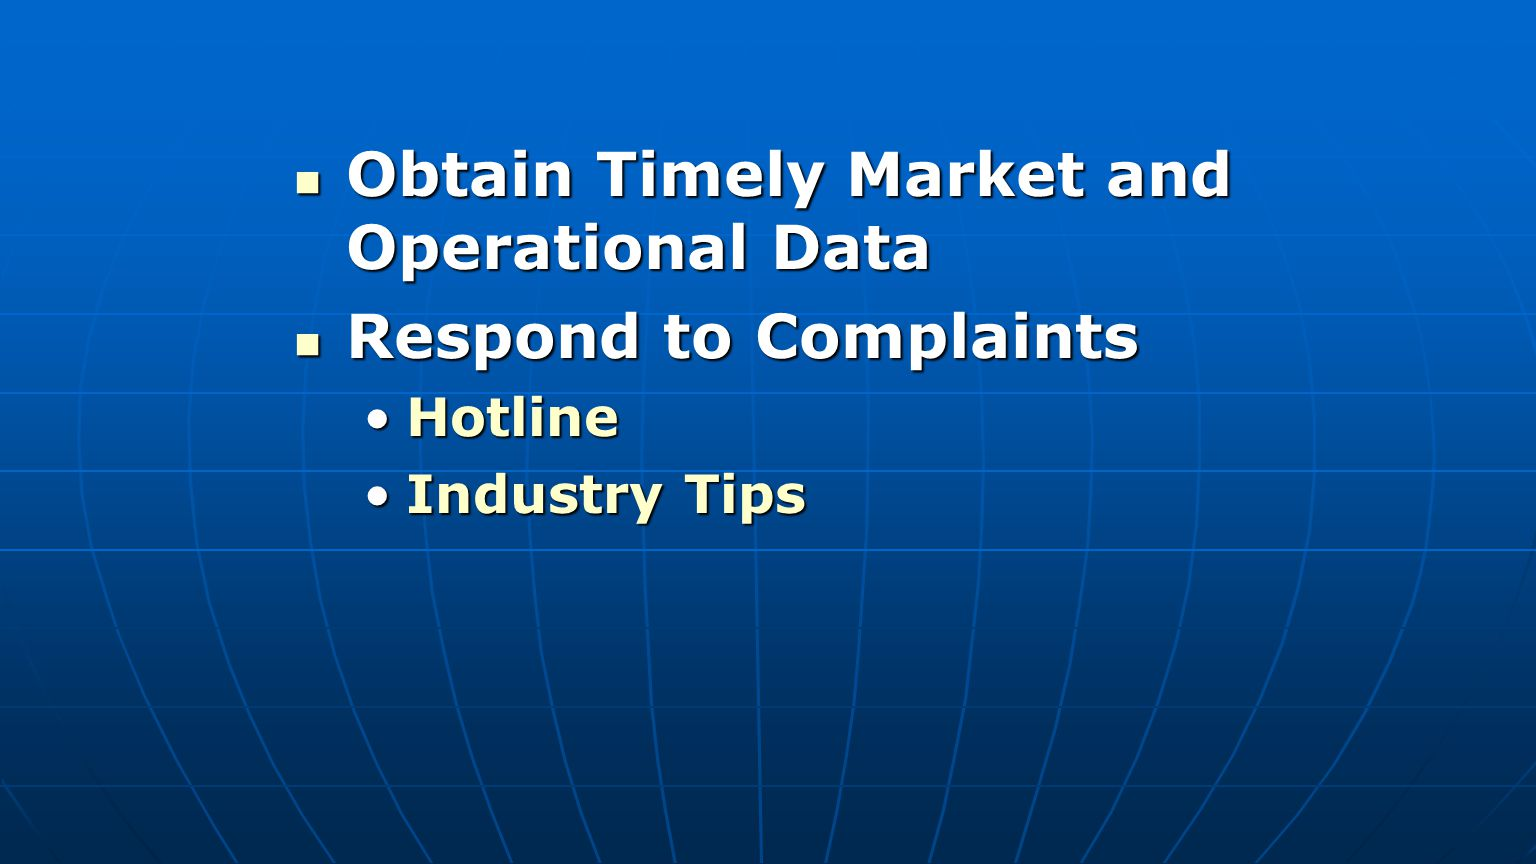 Obtain Timely Market and Operational Data Obtain Timely Market and Operational Data Respond to Complaints Respond to Complaints HotlineHotline Industry TipsIndustry Tips